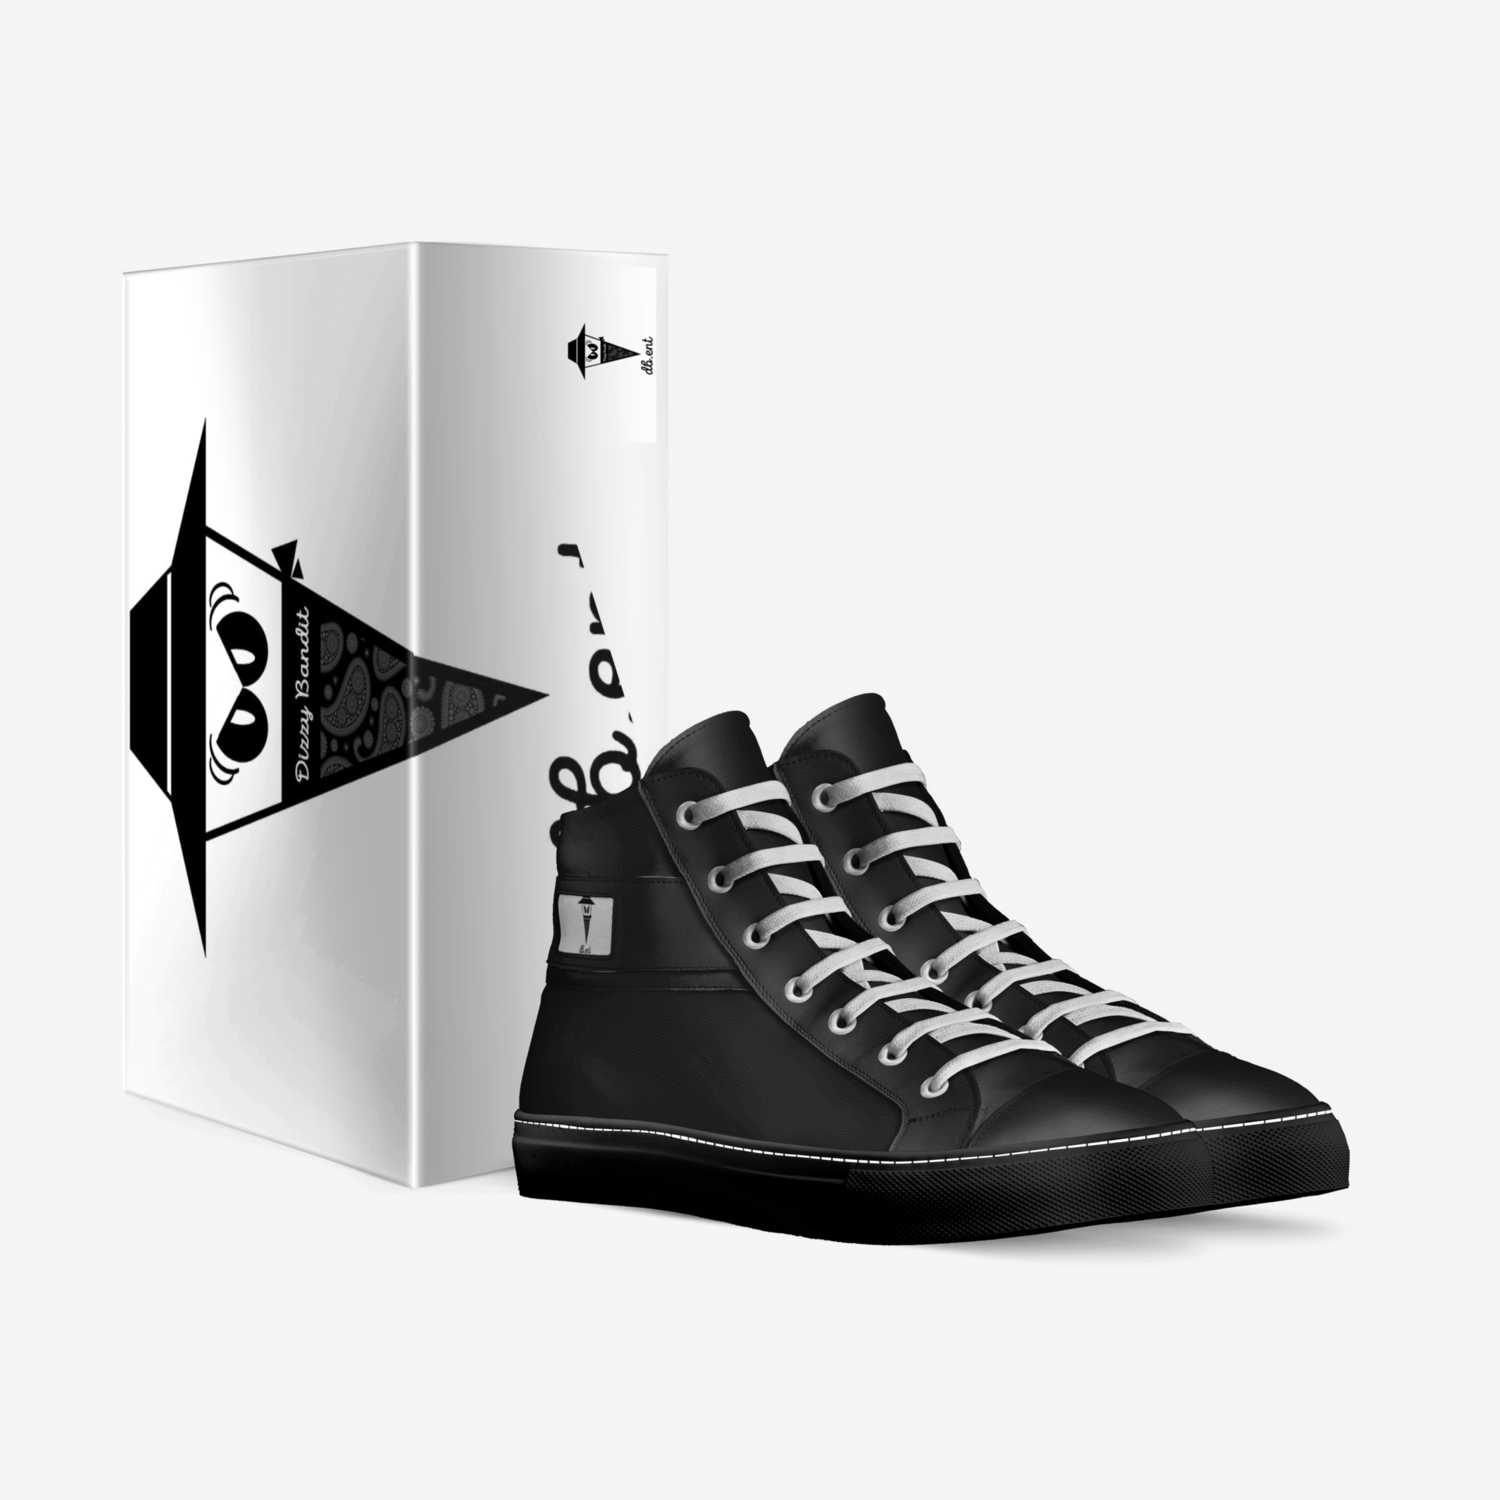 db.ent clothing  custom made in Italy shoes by William Mclellan | Box view